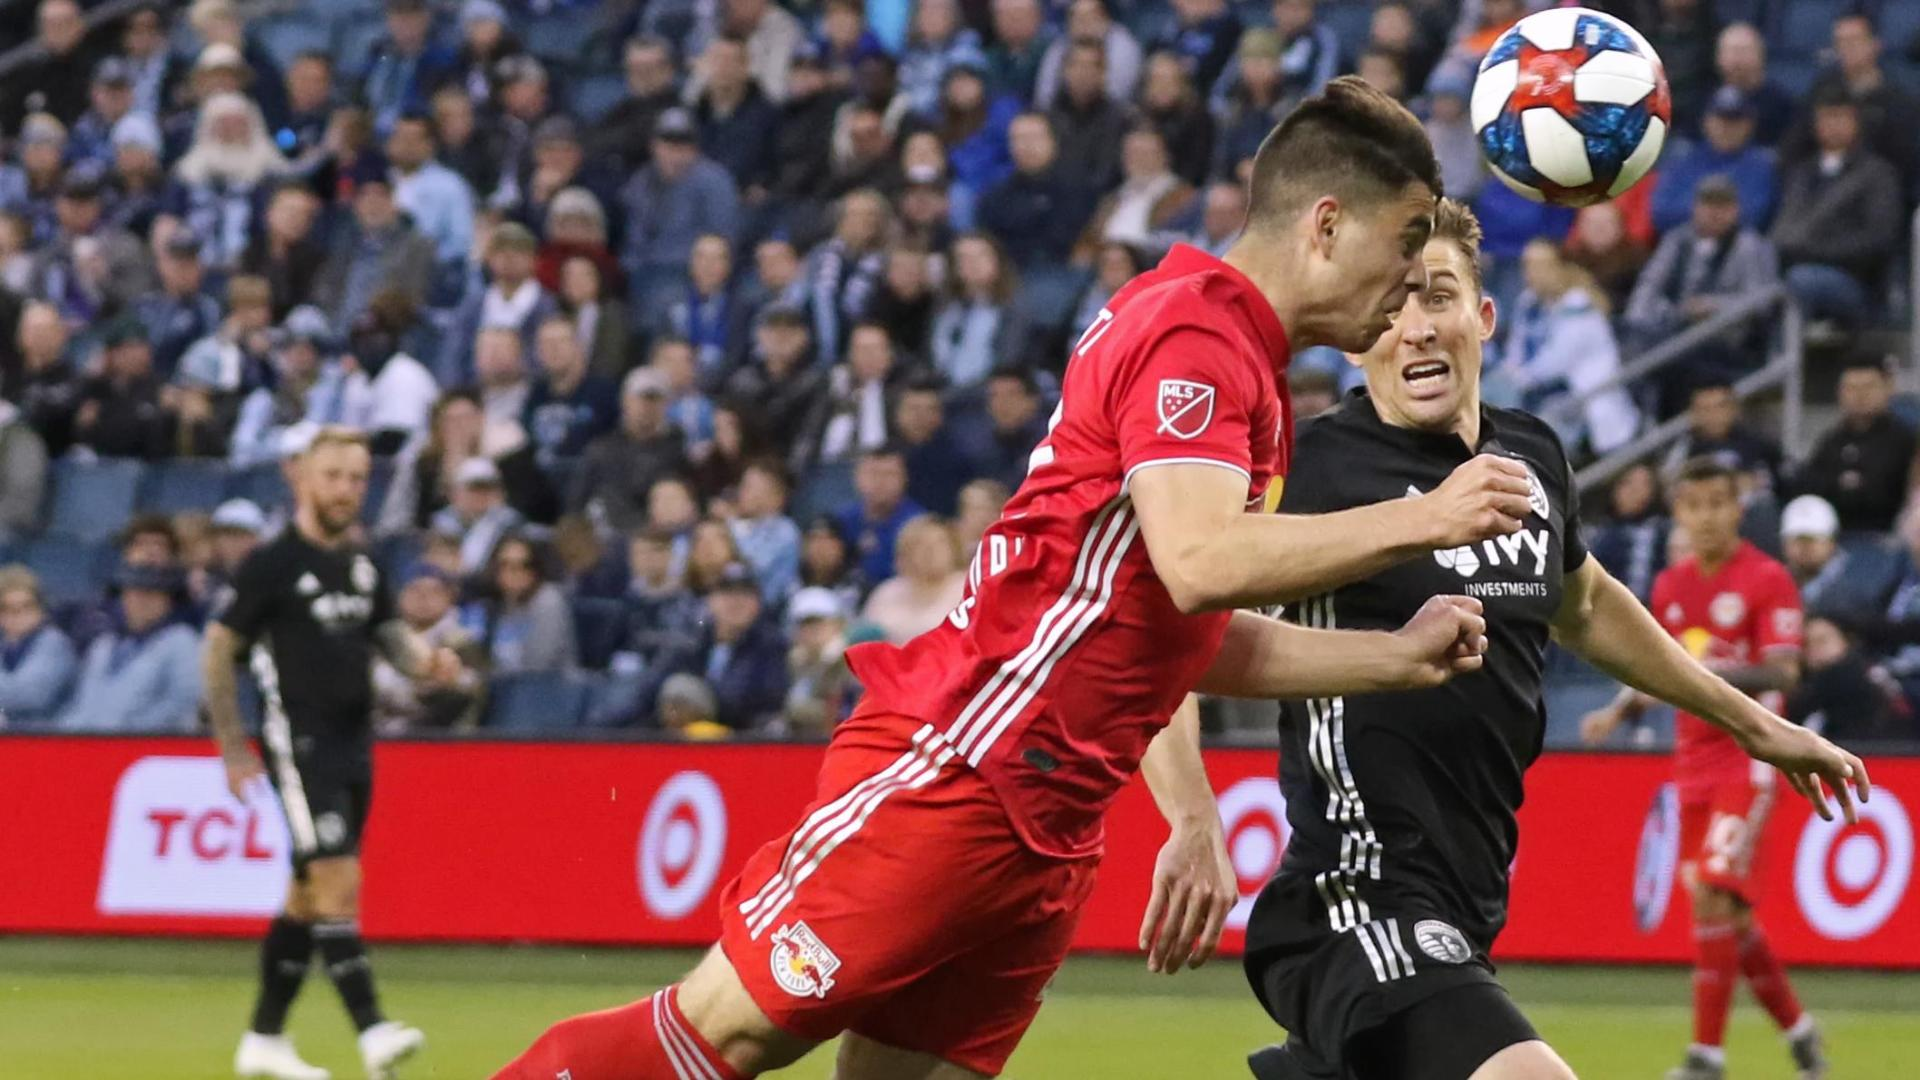 White's diving header puts the Red Bulls in front